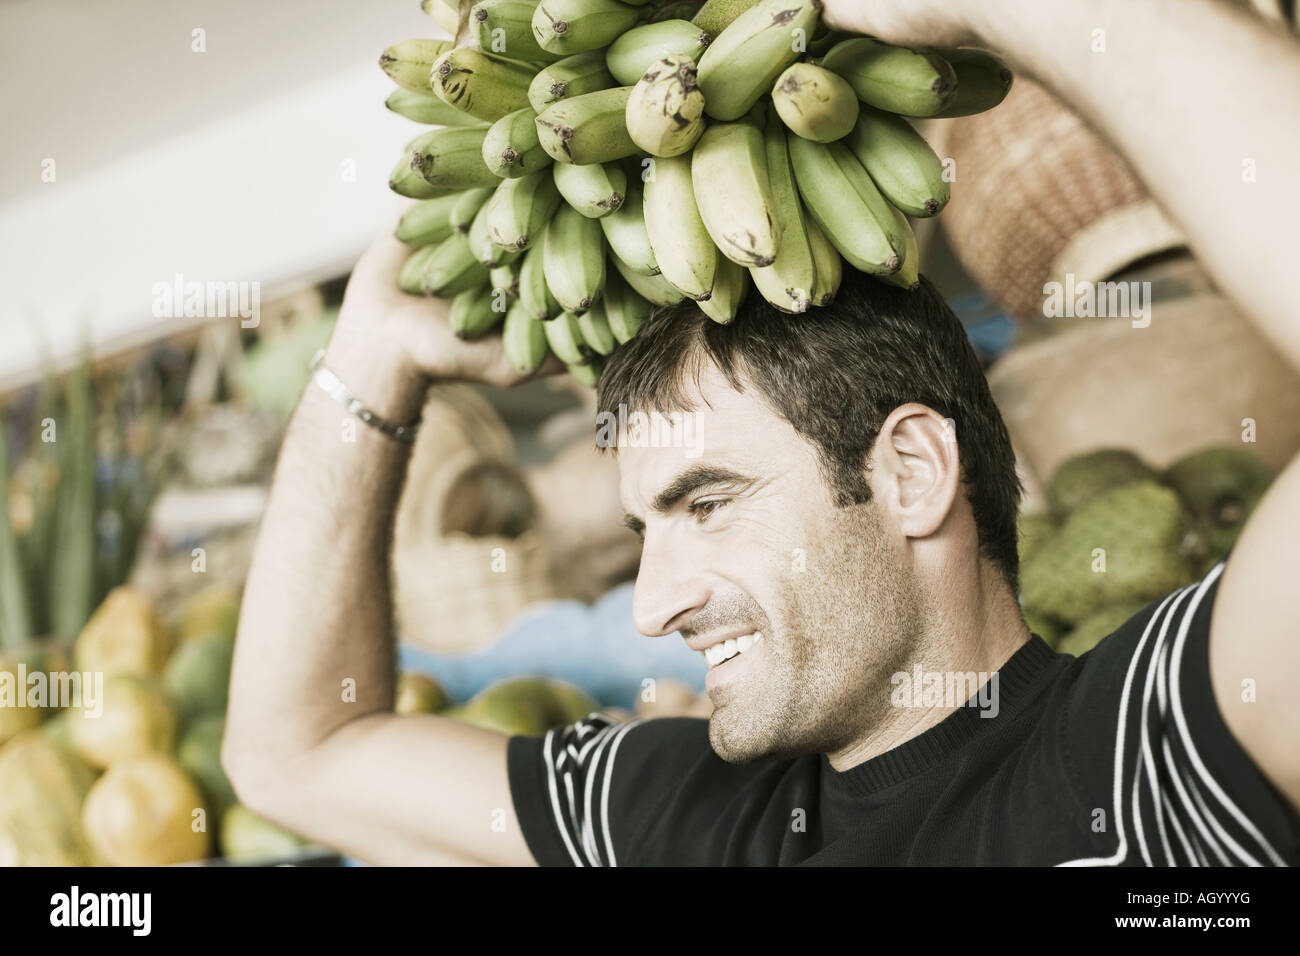 Close-up of a mid adult man carrying a bunch of bananas on his head - Stock Image